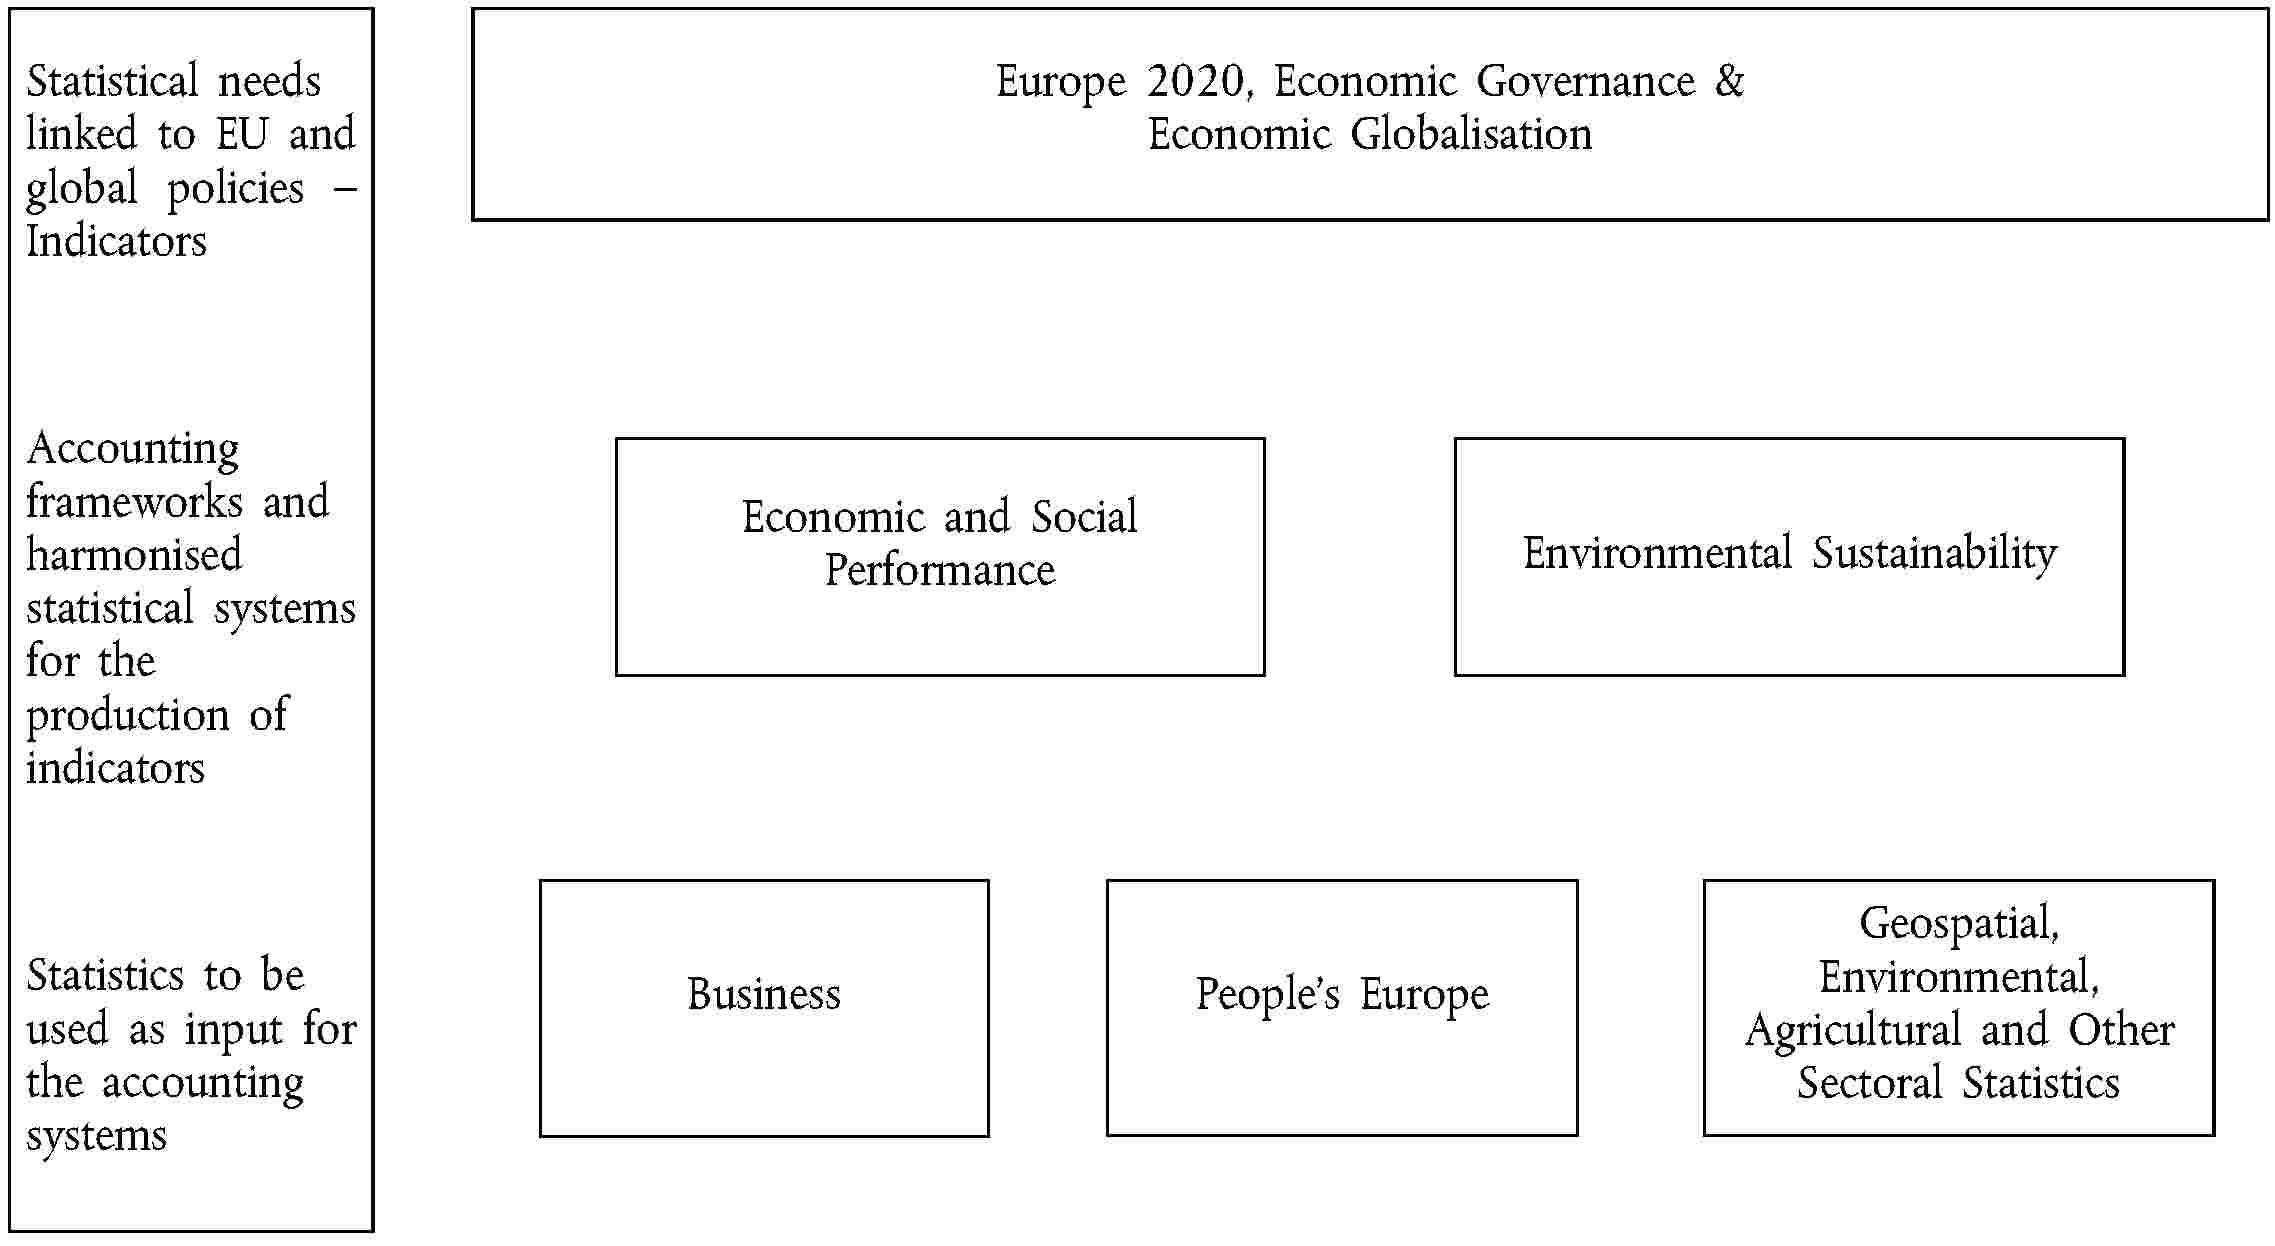 Statistical needs linked to EU and global policies – IndicatorsAccounting frameworks and harmonised statistical systems for the production of indicatorsStatistics to be used as input for the accounting systemsEurope 2020, Economic Governance & Economic GlobalisationEconomic and Social PerformanceEnvironmental SustainabilityBusinessPeople's EuropeGeospatial, Environmental, Agricultural and Other Sectoral Statistics